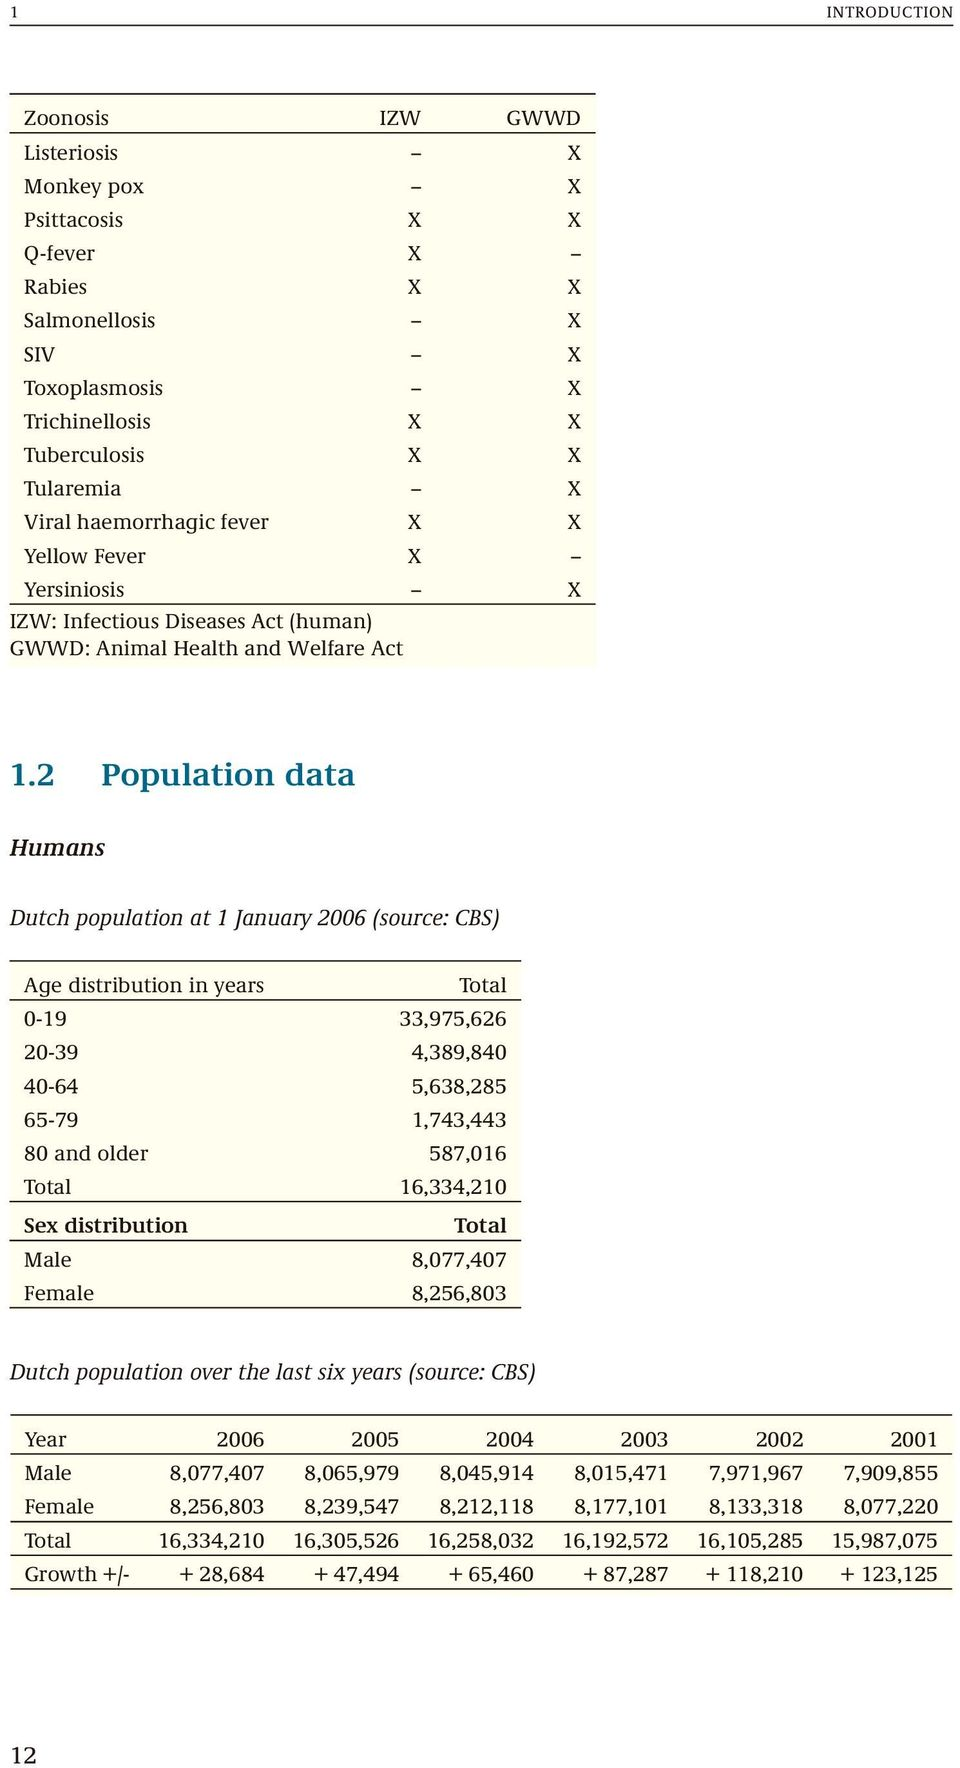 2 Population data Humans Dutch population at 1 January 2006 (source: CBS) Age distribution in years Total 0-19 33,975,626 20-39 4,389,840 40-64 5,638,285 65-79 1,743,443 80 and older 587,016 Total